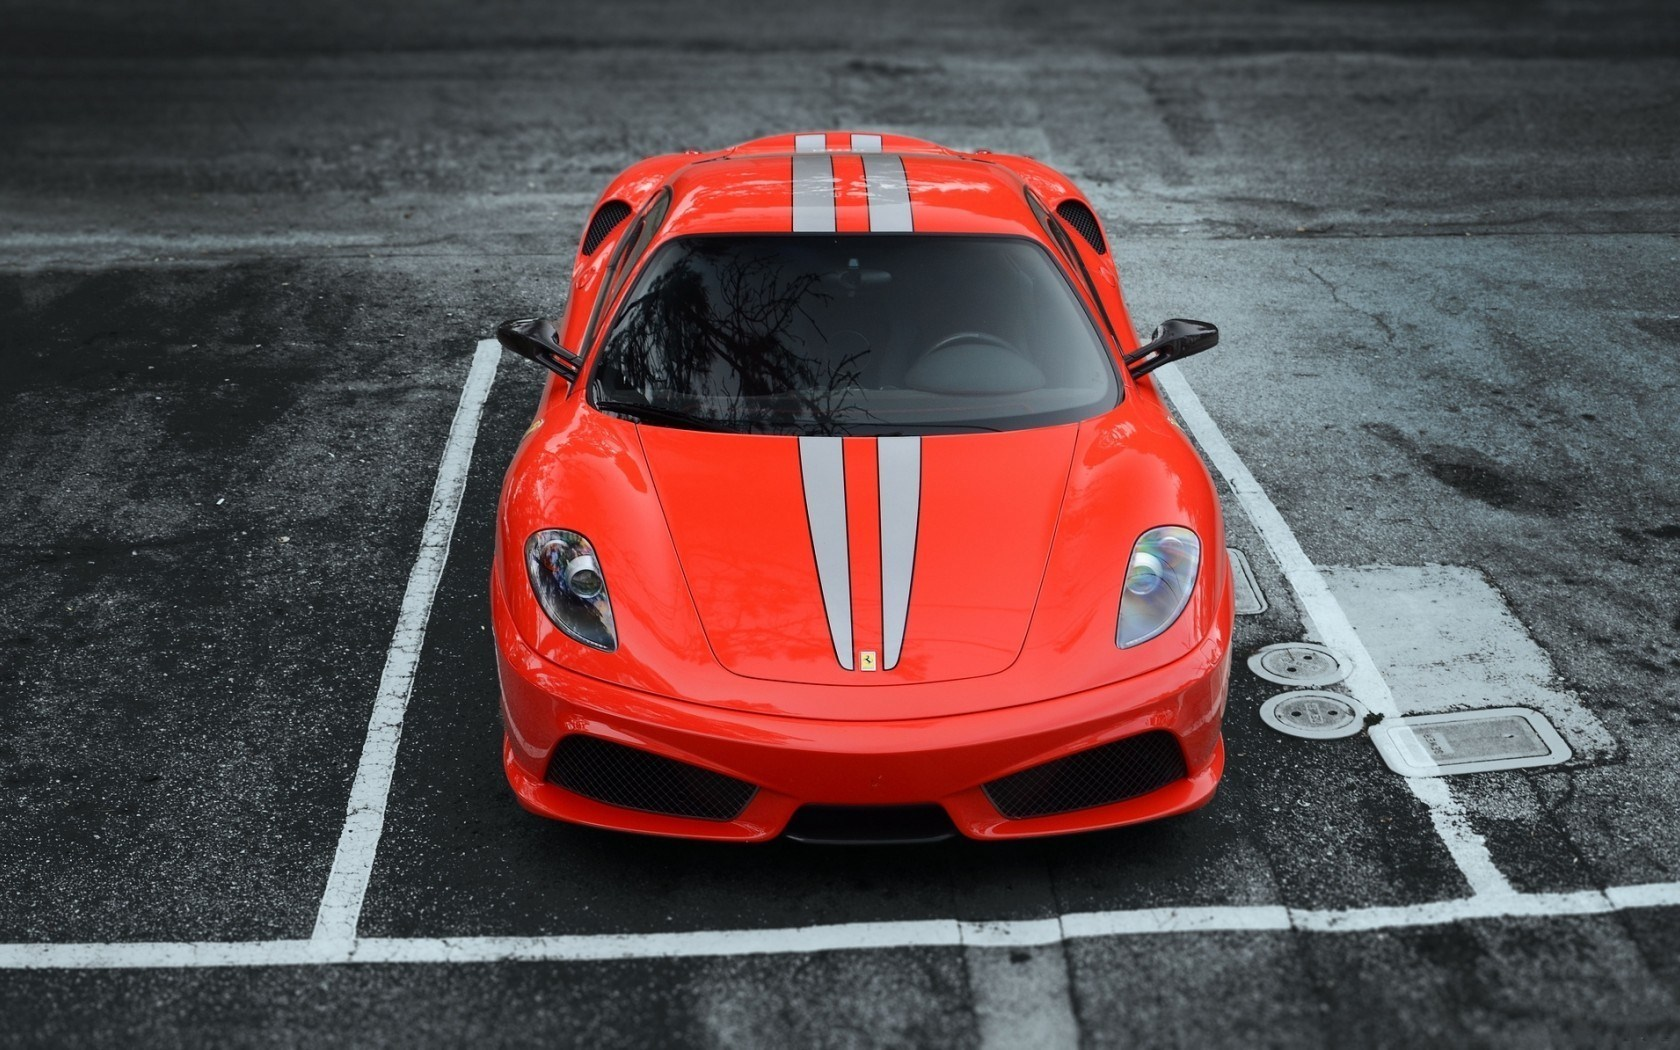 Ferrari F430 Scuderia Front Car Parking HD Wallpaper